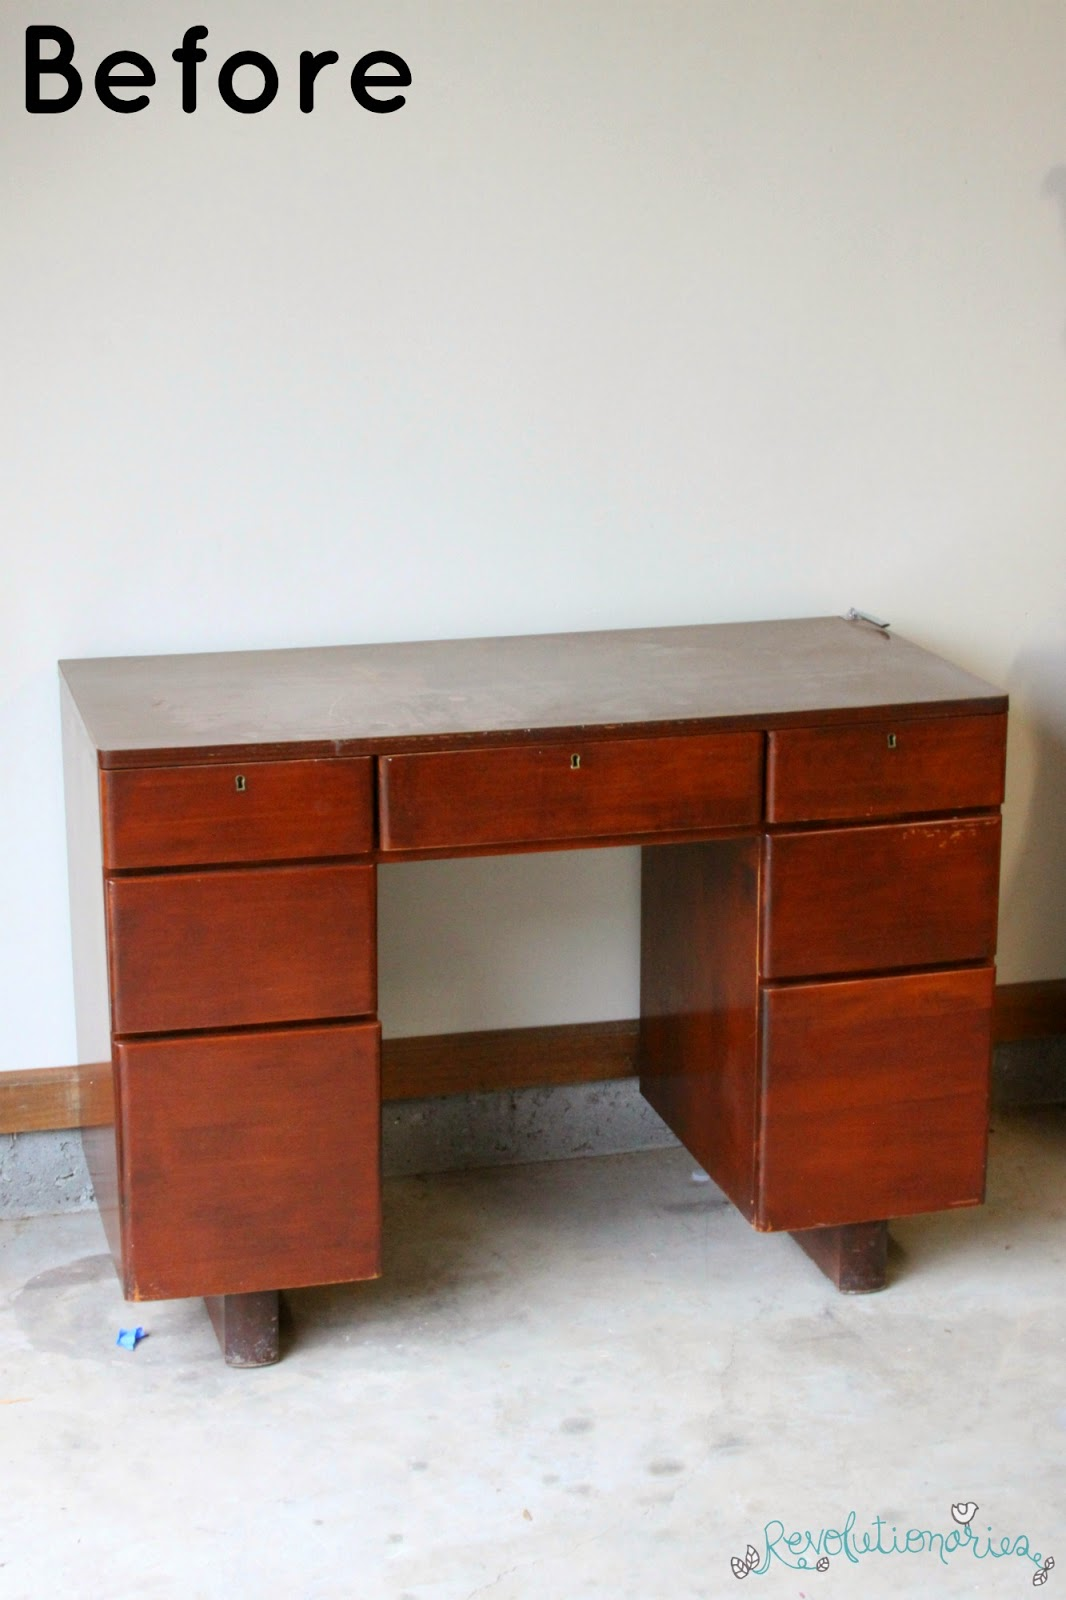 Before and After: The Gray Mid-Century Desk!